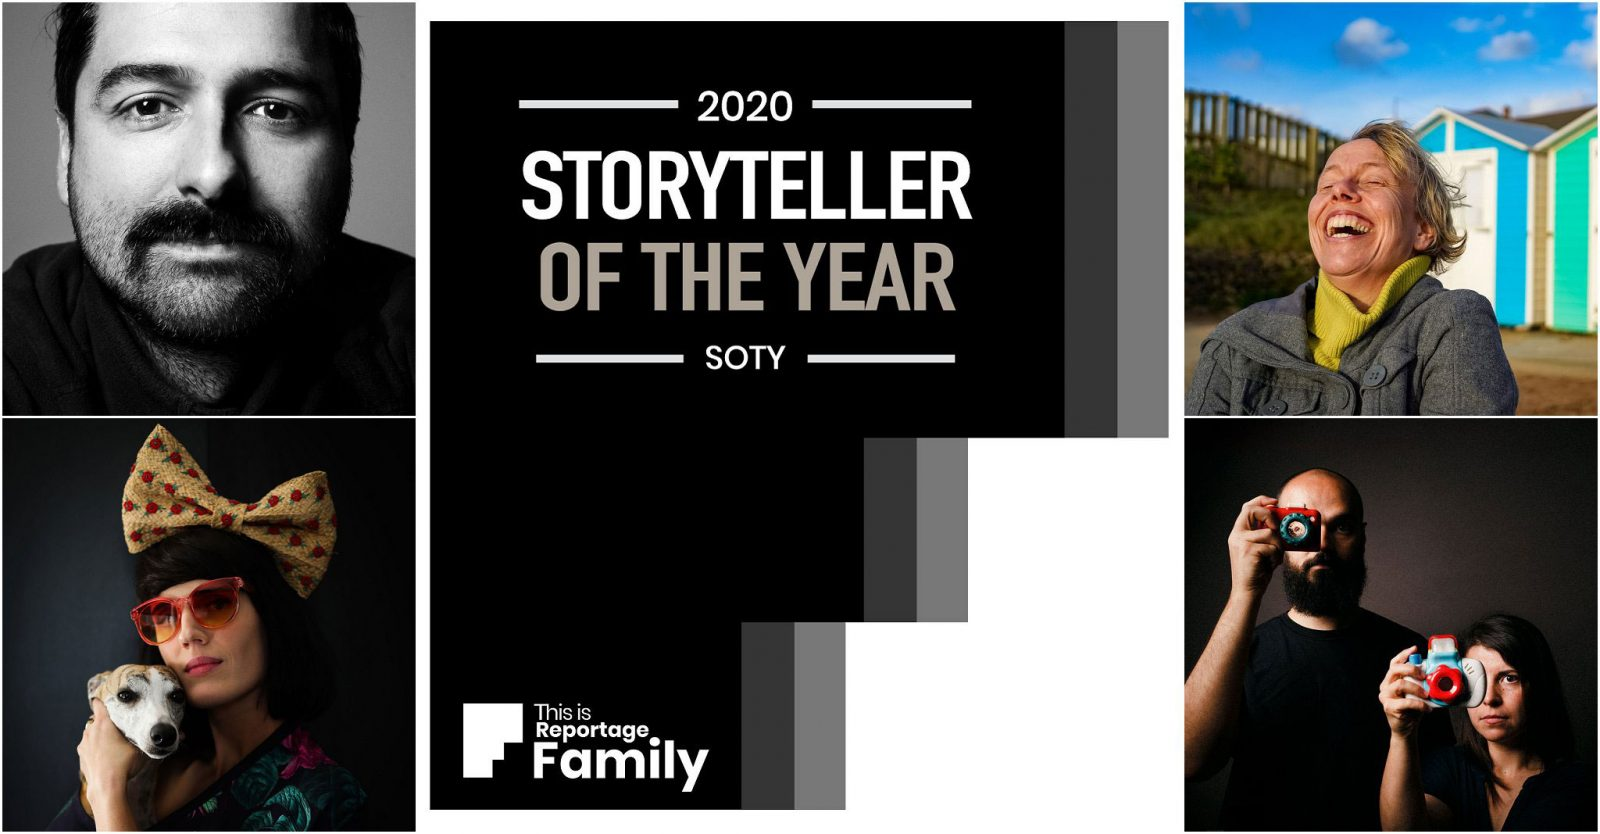 storyteller of the year 2020